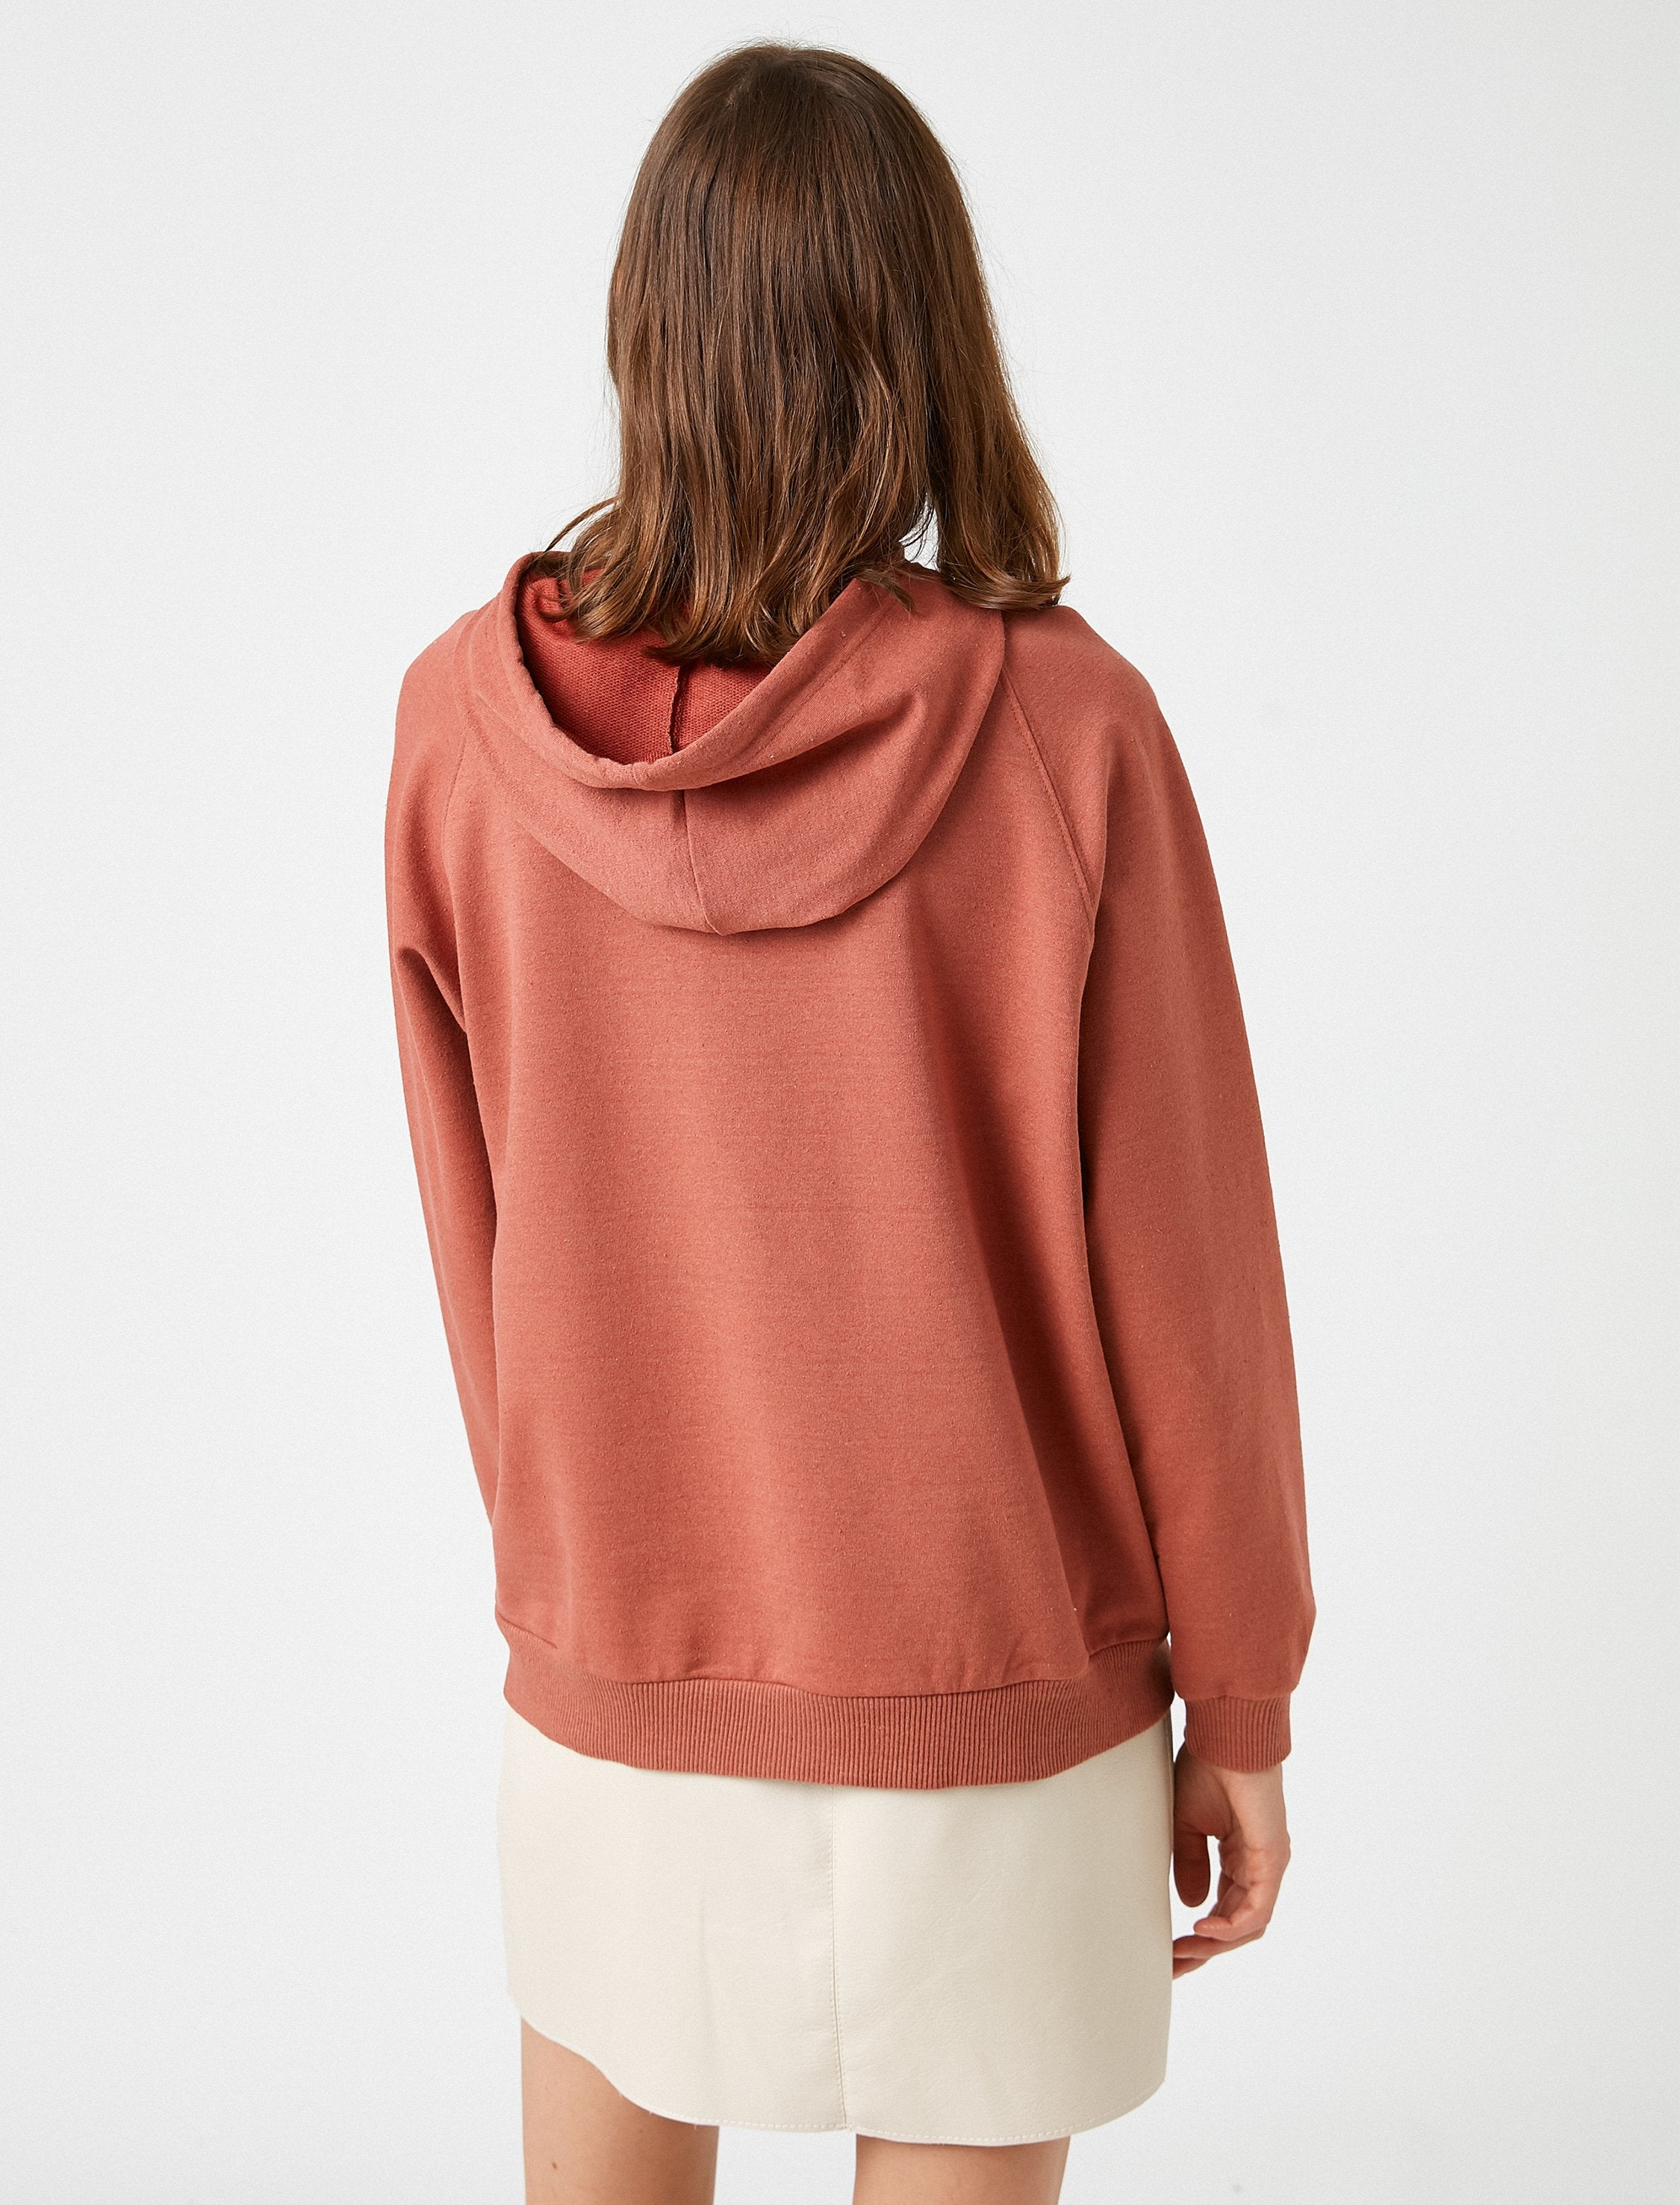 Raglan Hoodie With Pockets in Clay